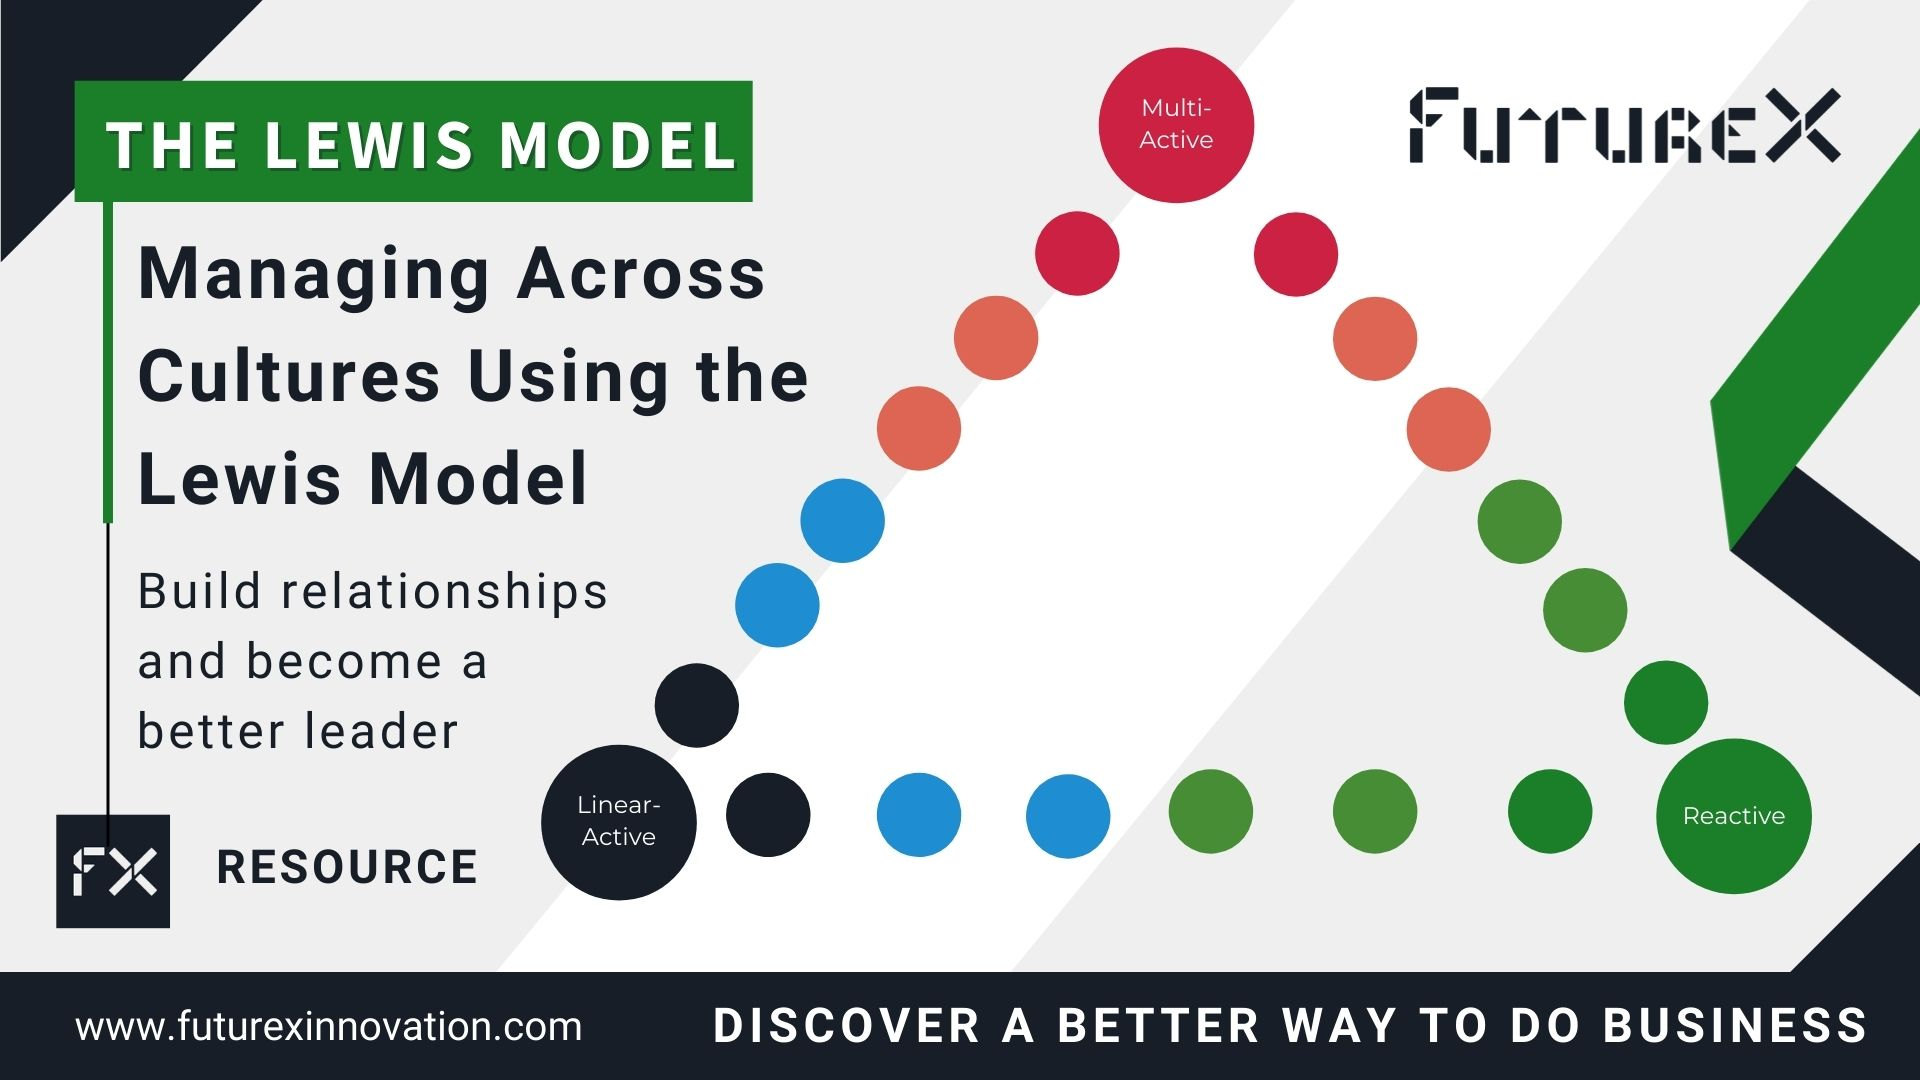 Managing Across Cultures Using the Lewis Model. Build relationships and become a better leader. FutureX resource